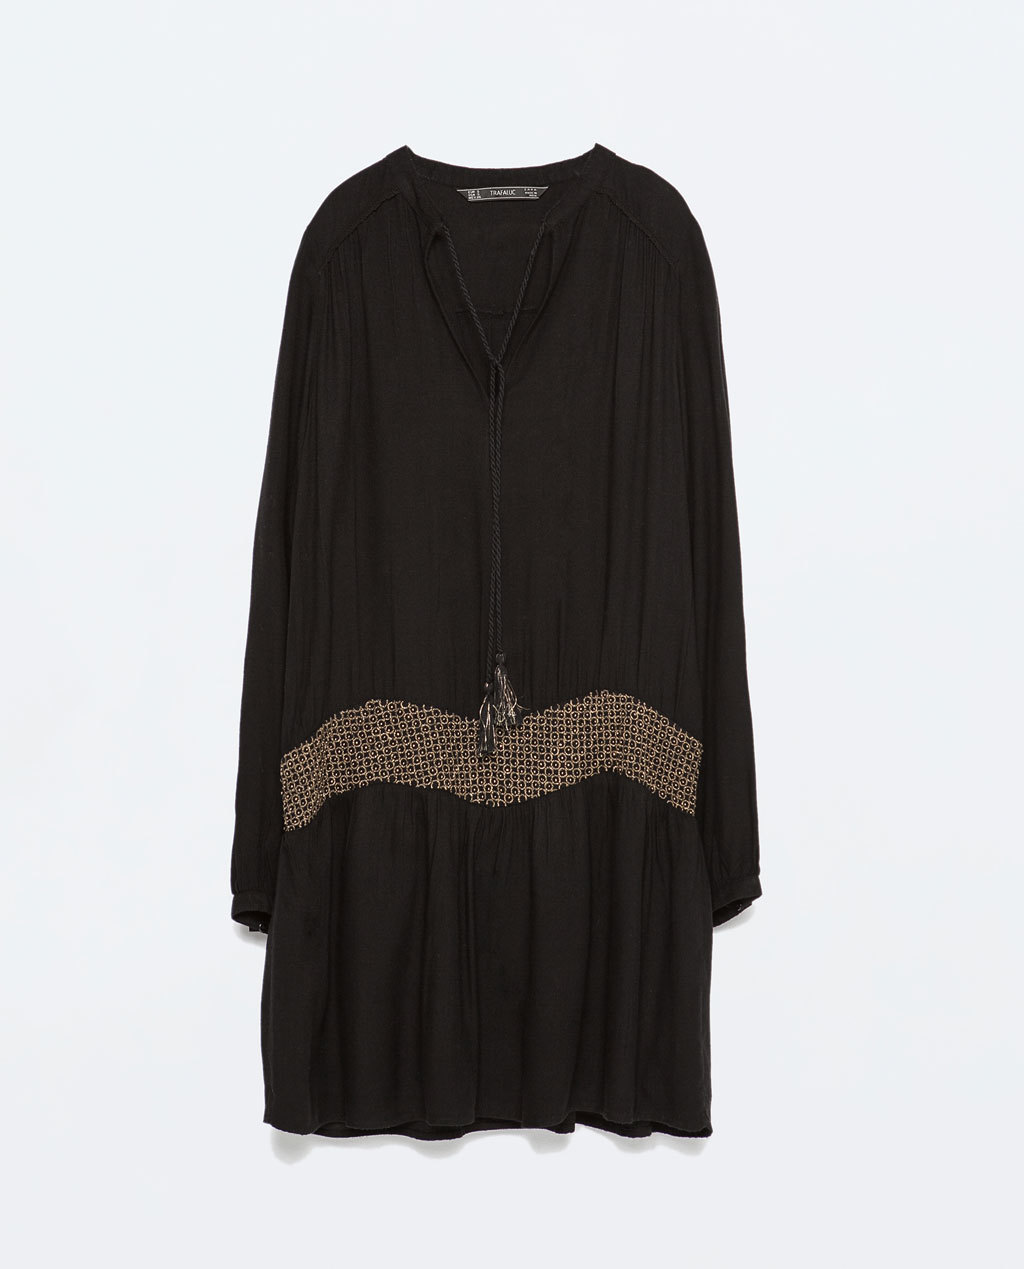 Embroidered Dress - style: tunic; length: mid thigh; neckline: low v-neck; fit: loose; pattern: plain; secondary colour: stone; predominant colour: black; occasions: casual, evening, creative work; fibres: cotton - 100%; sleeve length: long sleeve; sleeve style: standard; texture group: cotton feel fabrics; pattern type: fabric; embellishment: embroidered; season: s/s 2015; wardrobe: highlight; embellishment location: waist